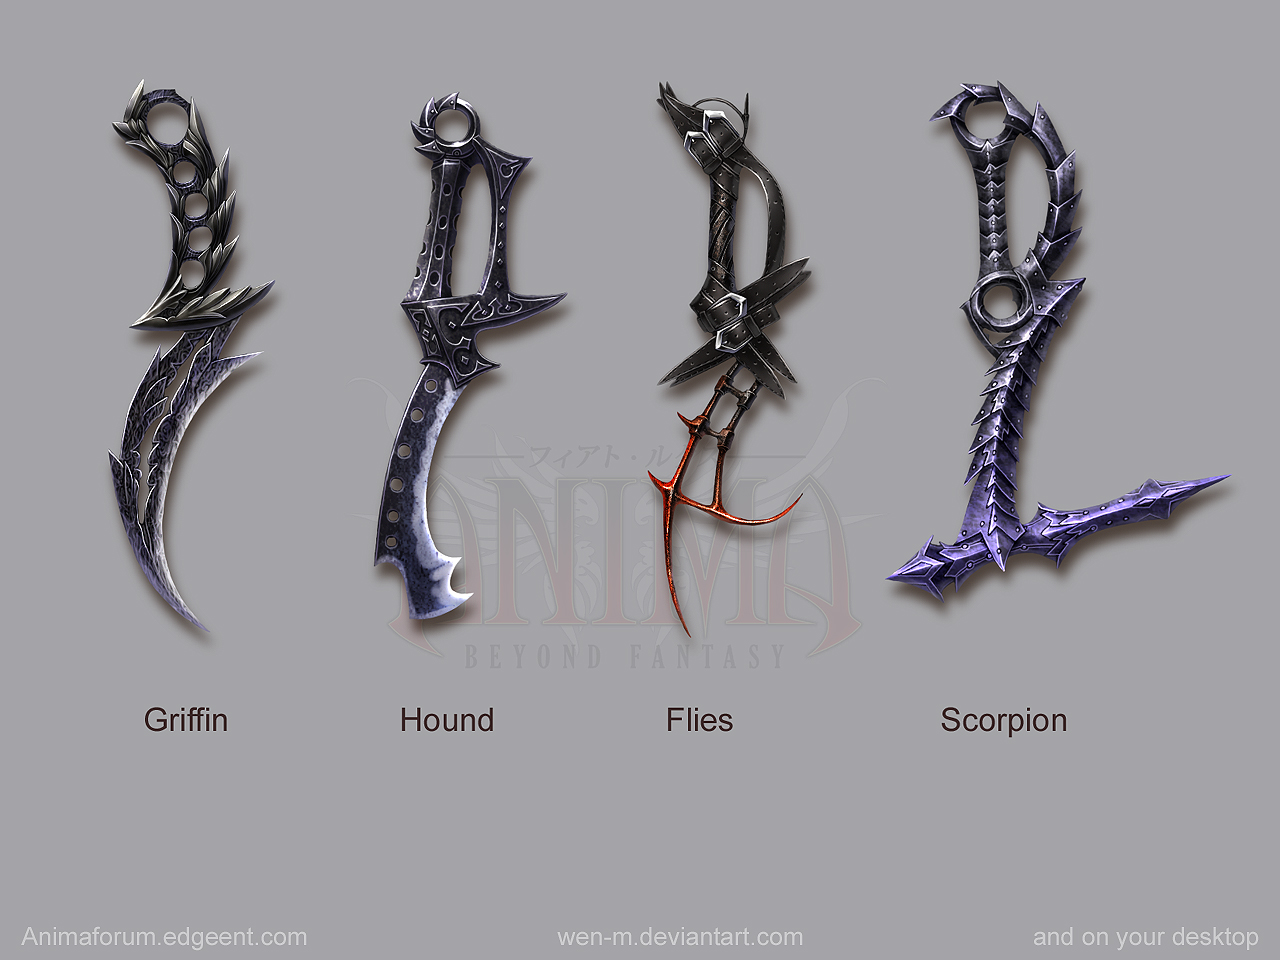 http://fc06.deviantart.net/fs44/f/2009/093/c/5/Anima__Kyler_knives_Wallpaper_by_Wen_M.jpg